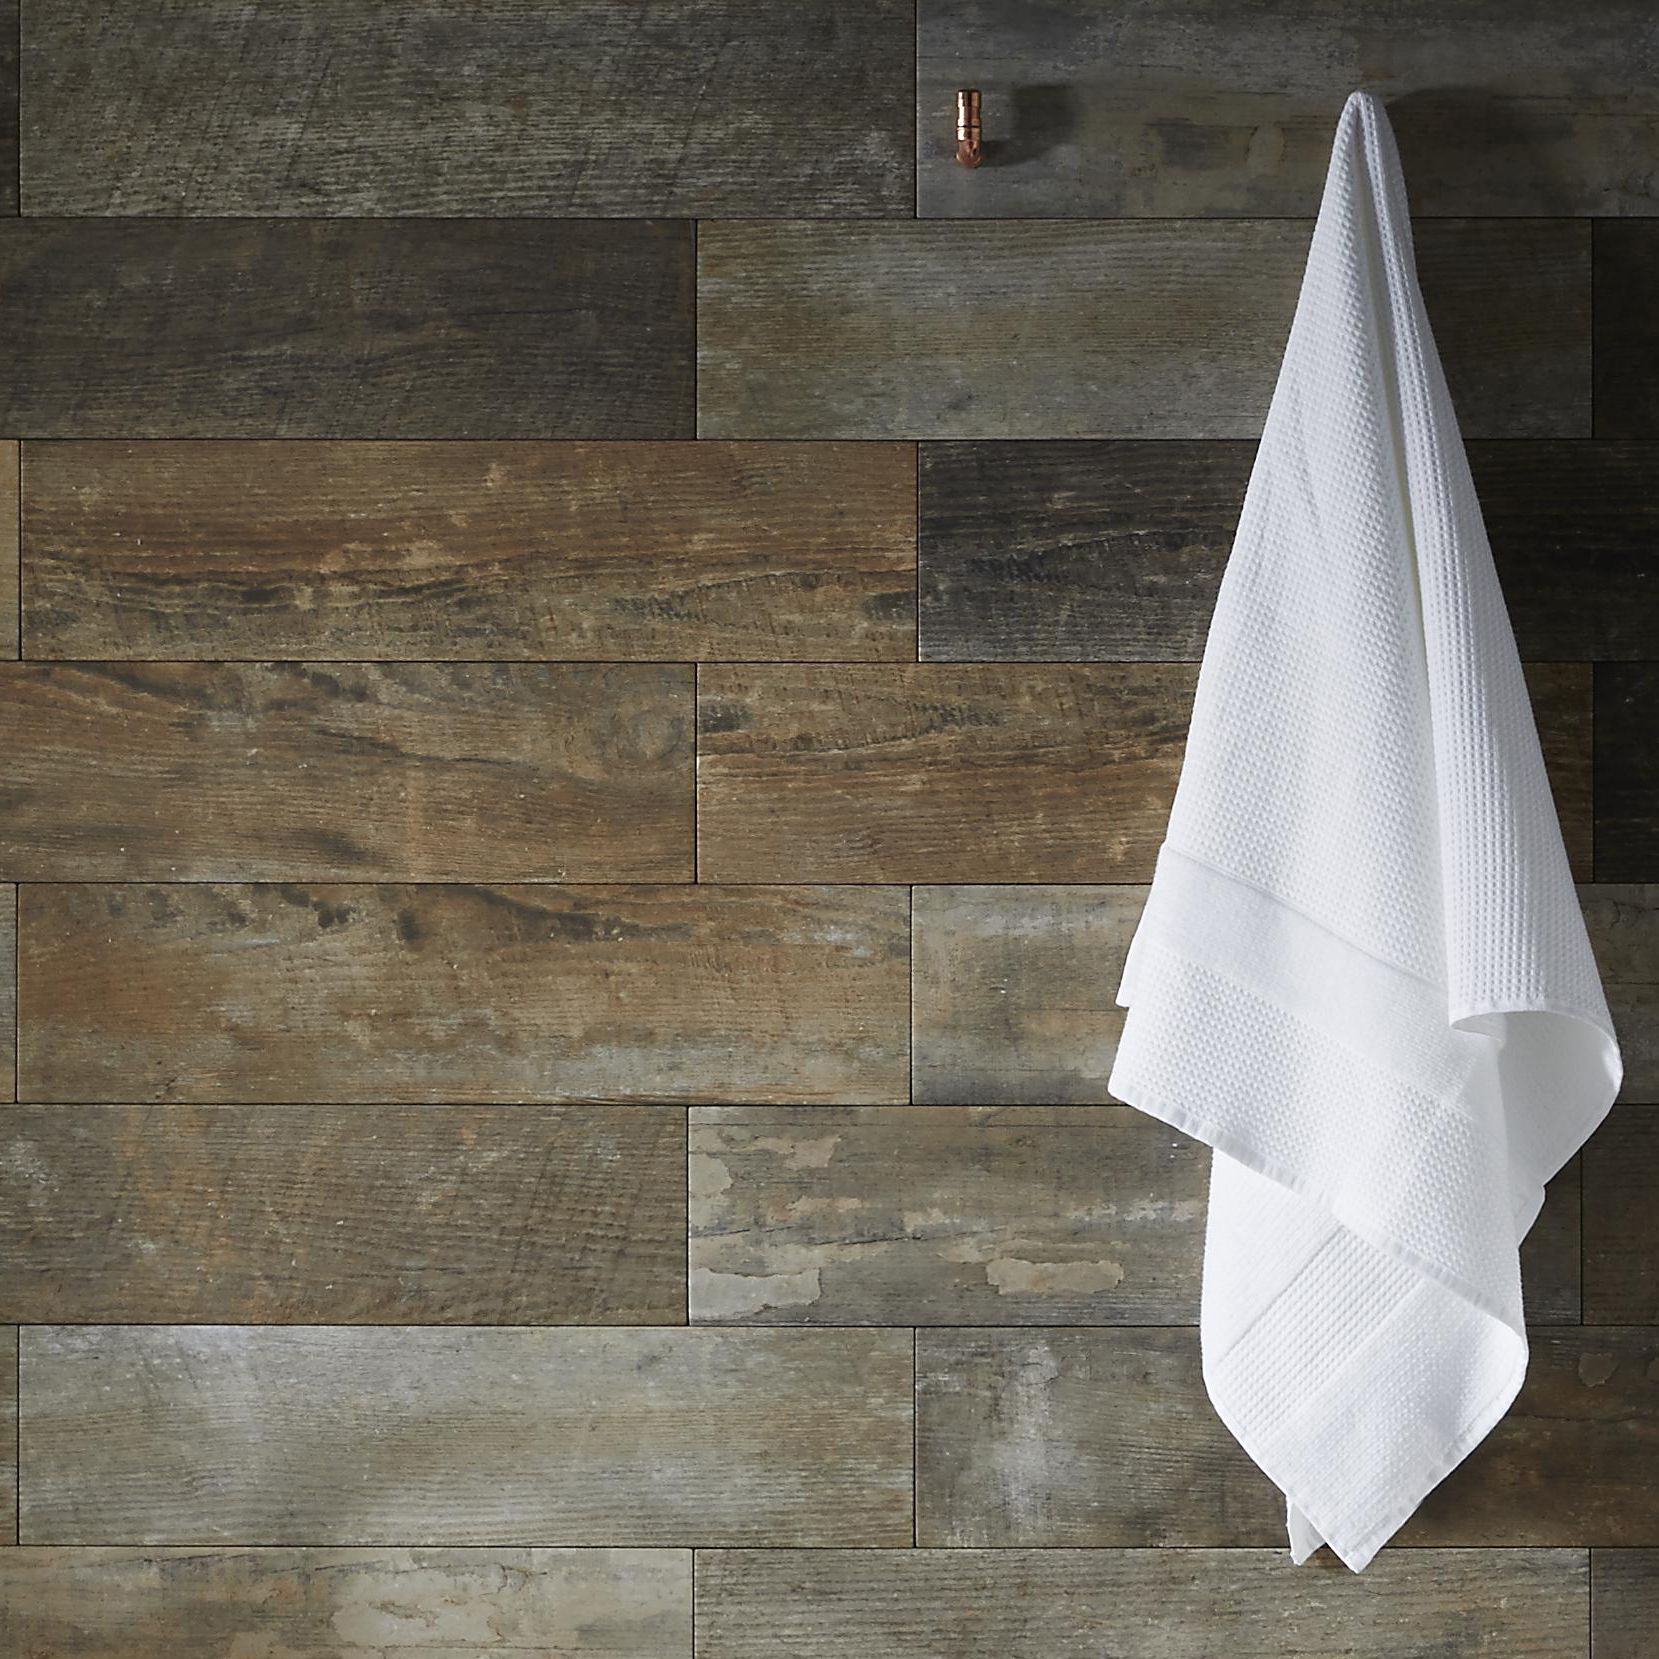 Savona Grey Matt Wood Effect Porcelain Wall Amp Floor Tile